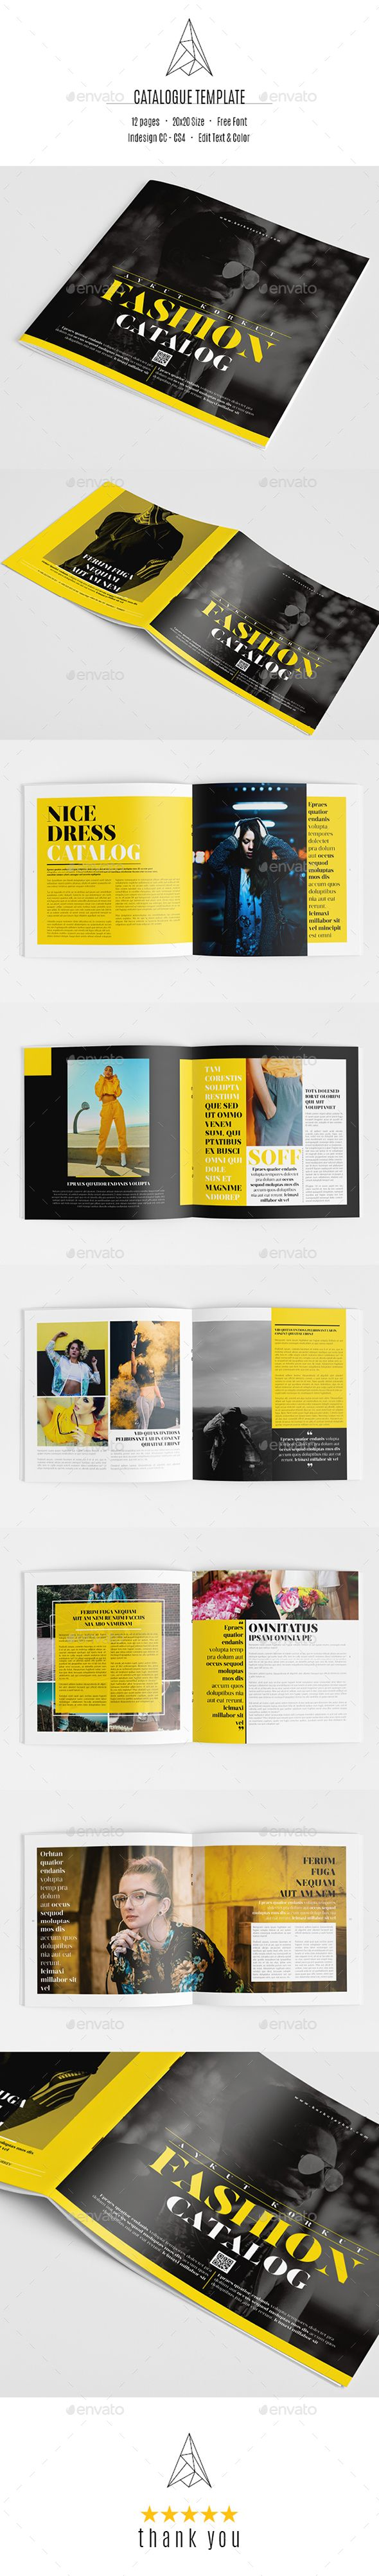 pin by basi on album pinterest brochure template templates and